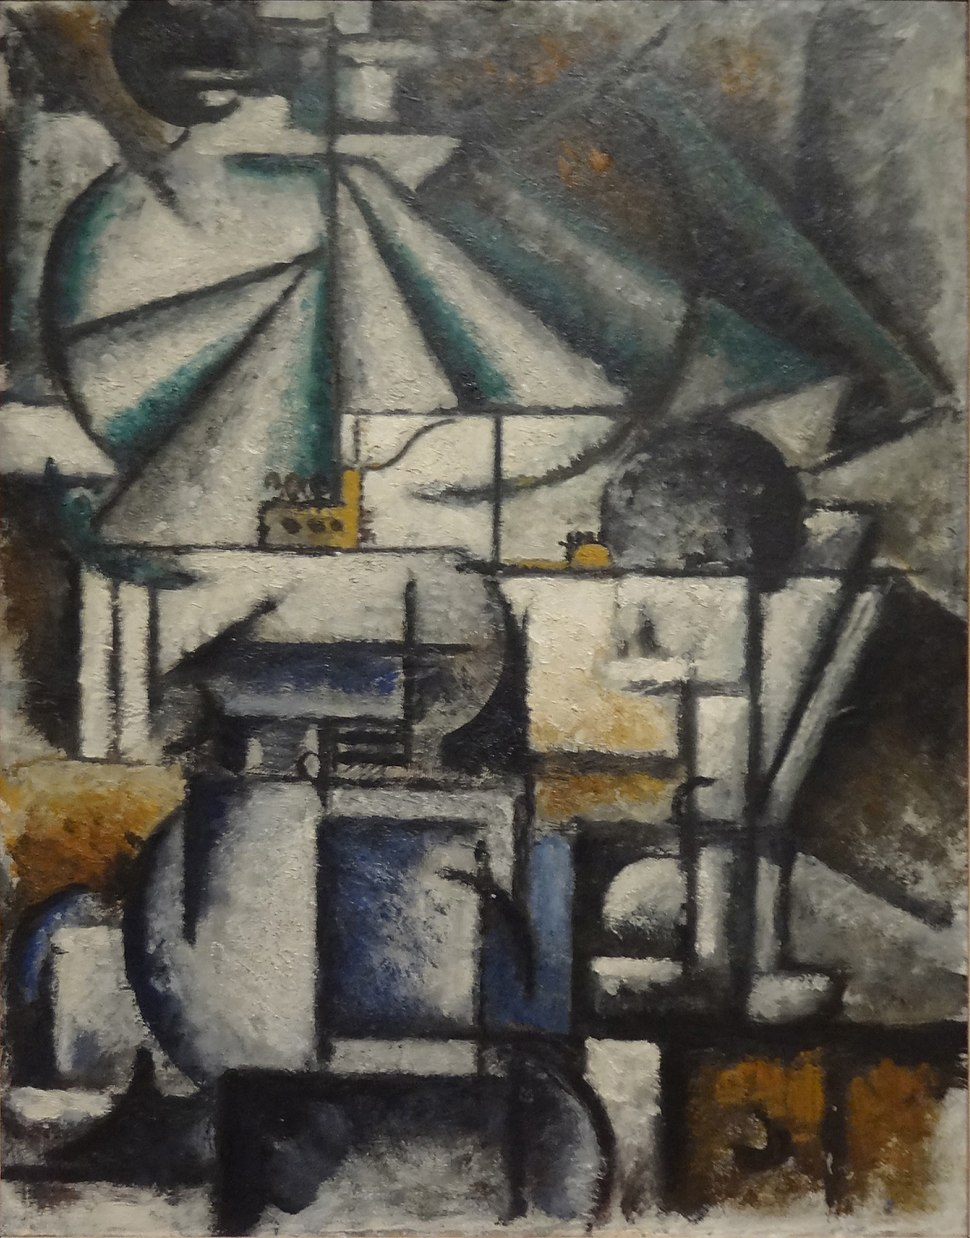 Ardengo Soffici, 1912-13, Deconstruction of the Planes of a Lamp, oil on panel, 45 x 35 cm, Estorick Collection, London